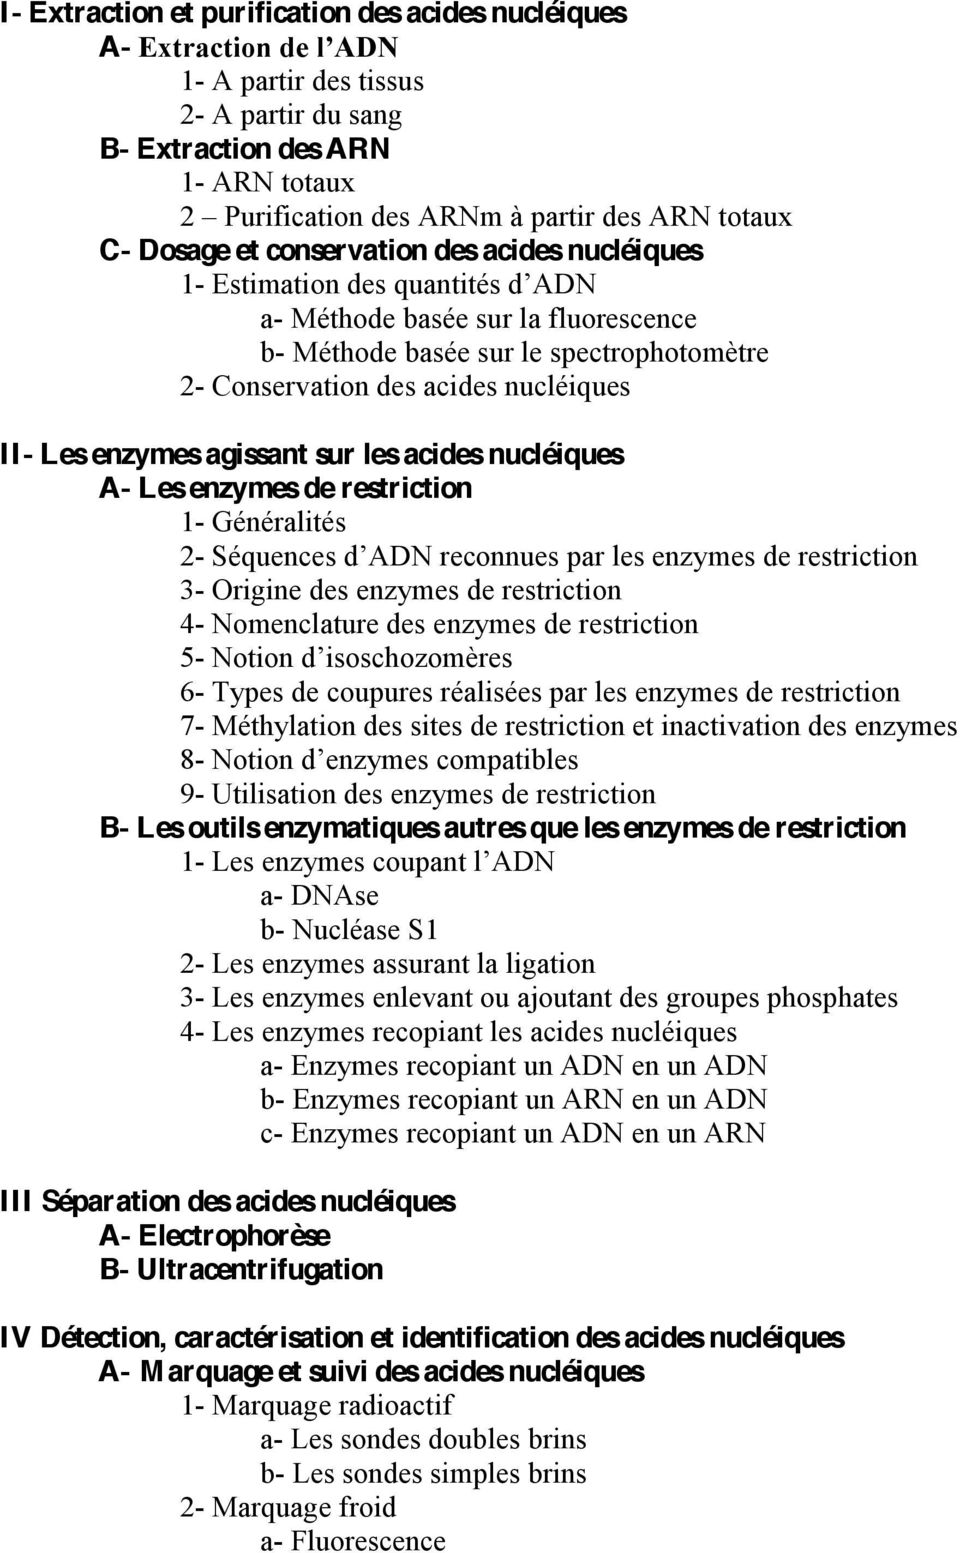 acides nucléiques A- Les enzymes de restriction 1- Généralités 2-3- Origine des enzymes de restriction 4- Nomenclature des enzymes de restriction 5-6- Types de coupures réalisées par les enzymes de